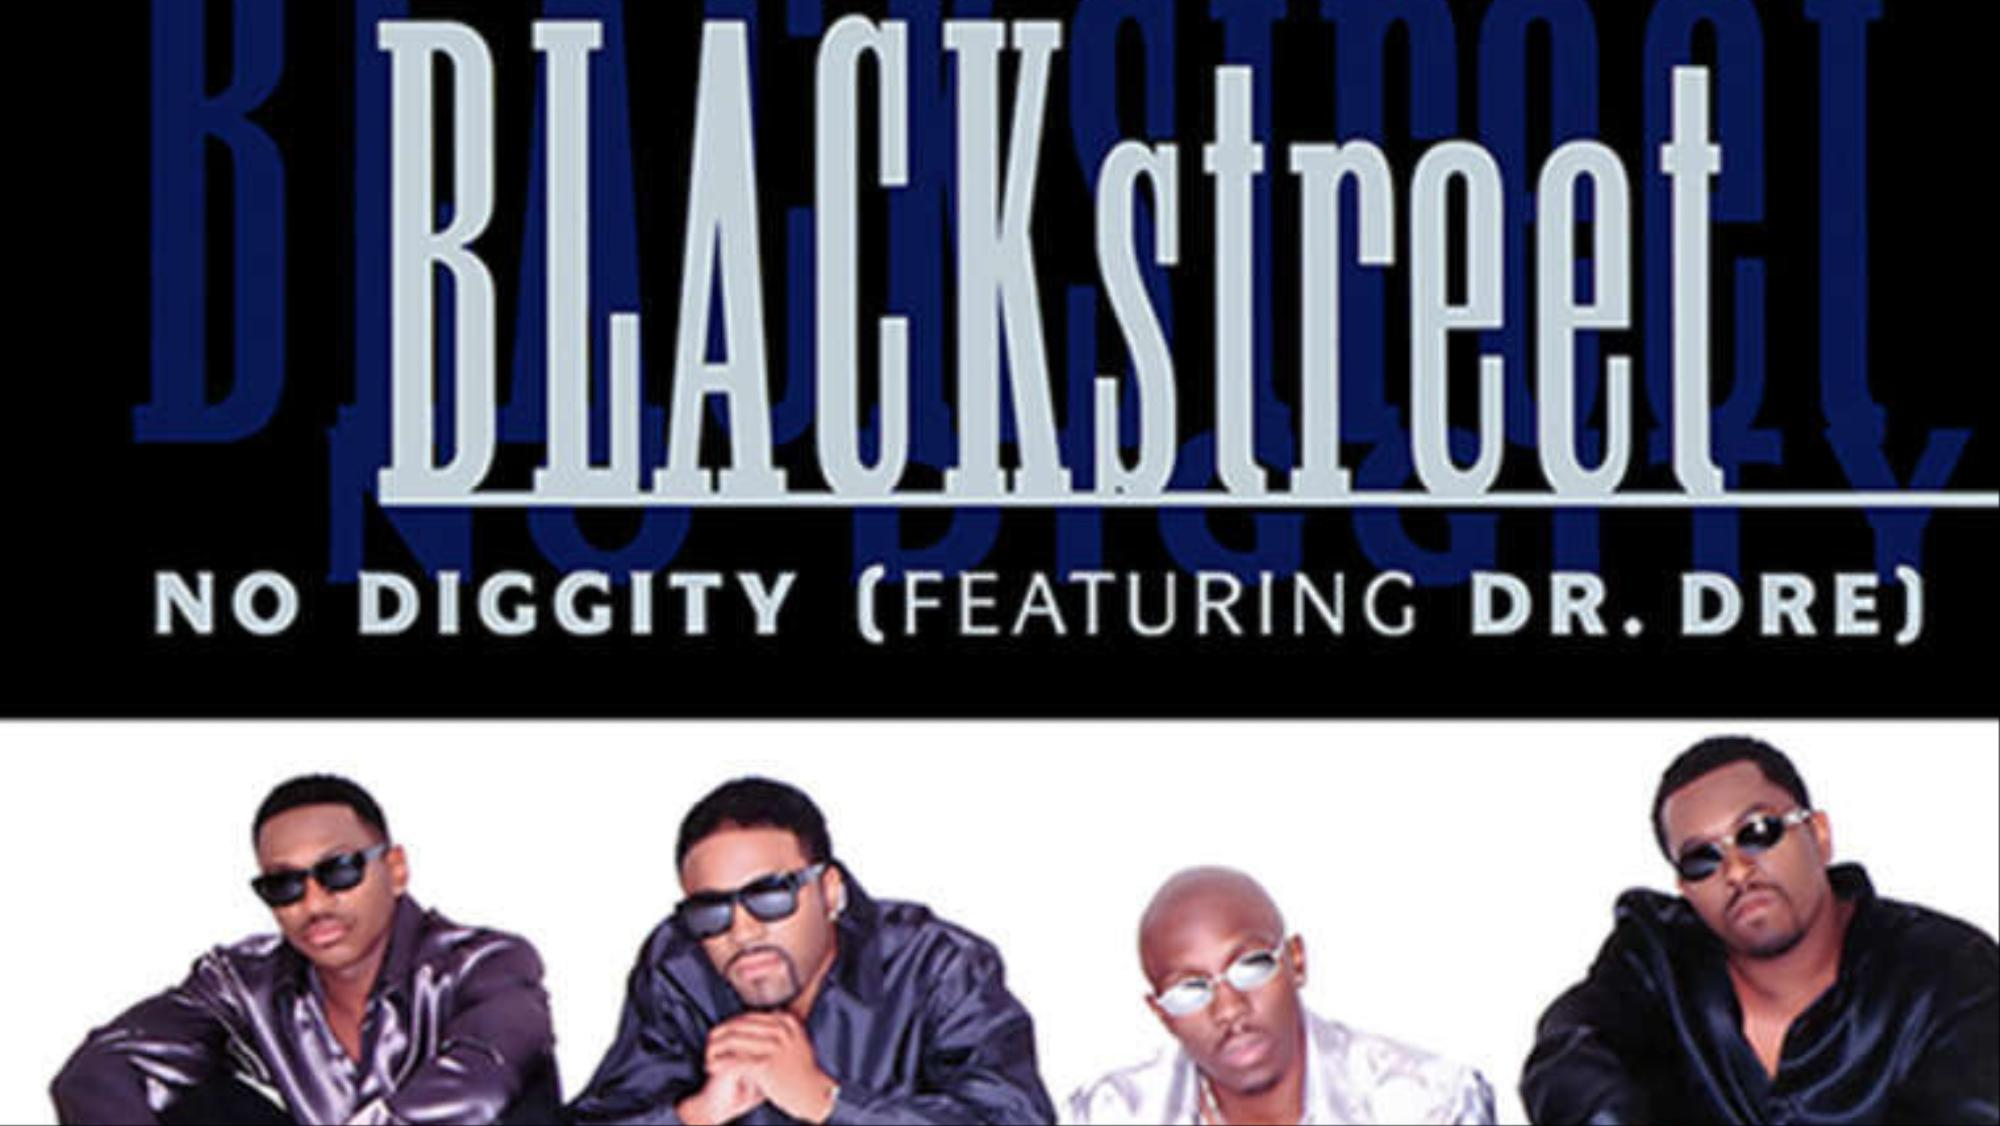 ​no diggity: the most timeless tracks of all time